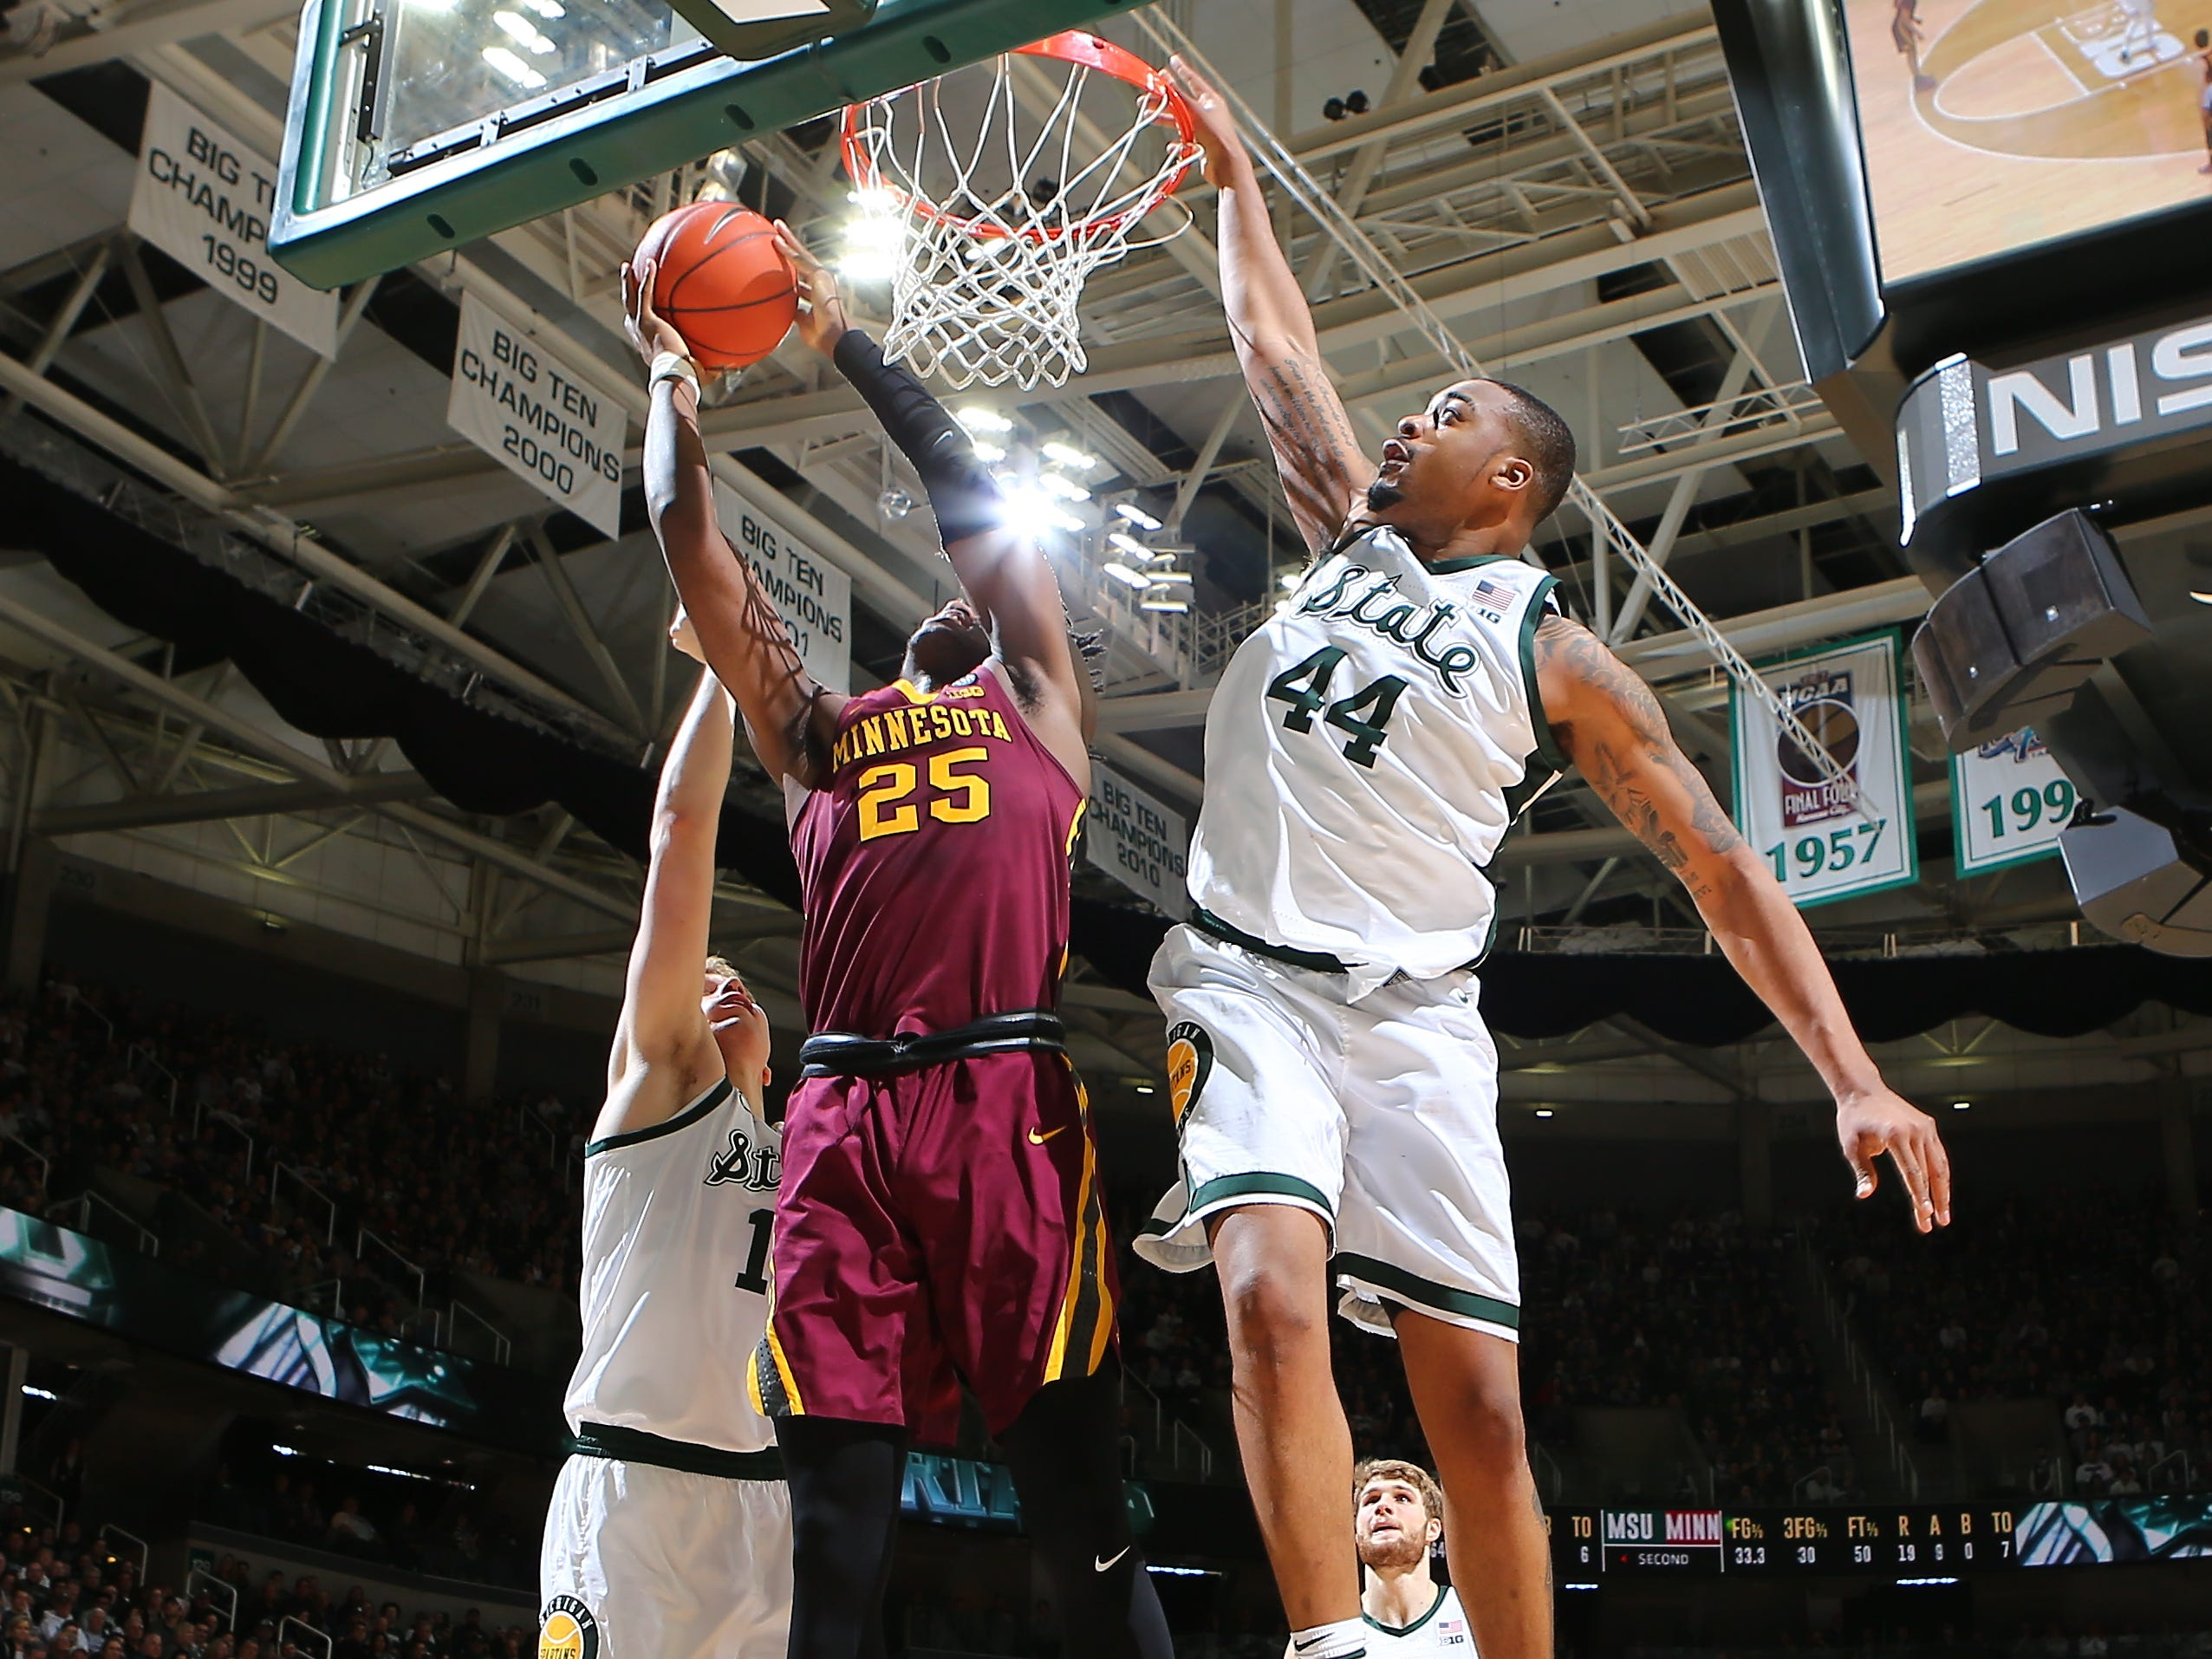 Daniel Oturu of the Minnesota Golden Gophers shoots the ball against Nick Ward in the second half.